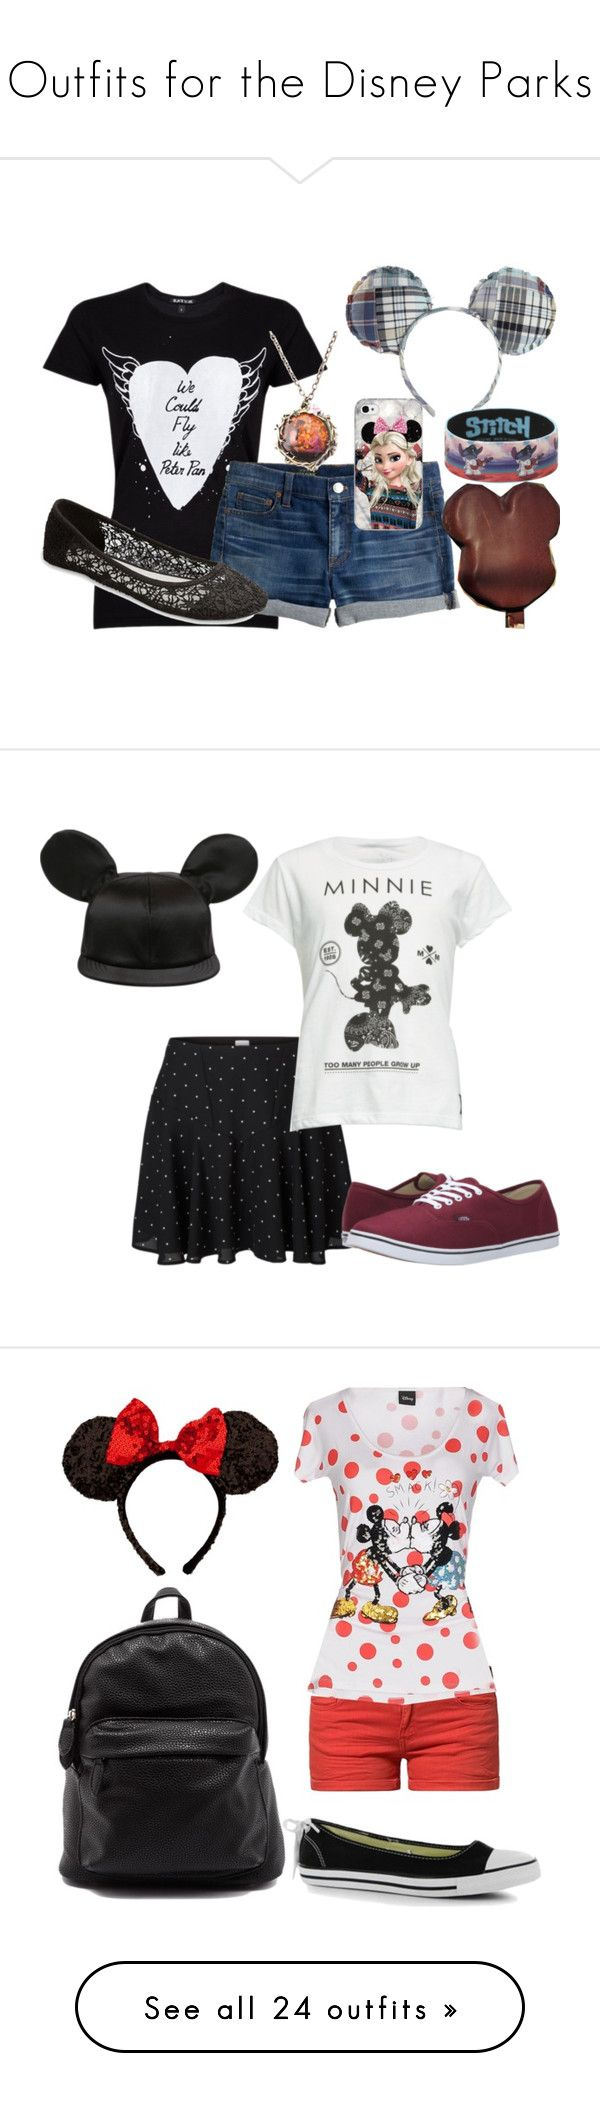 """Outfits for the Disney Parks"" by ivyskye ❤ liked on Polyvore featuring Black Score, J.Crew, Wet Seal, Disney, women's clothing, women's fashion, women, female, woman and misses"